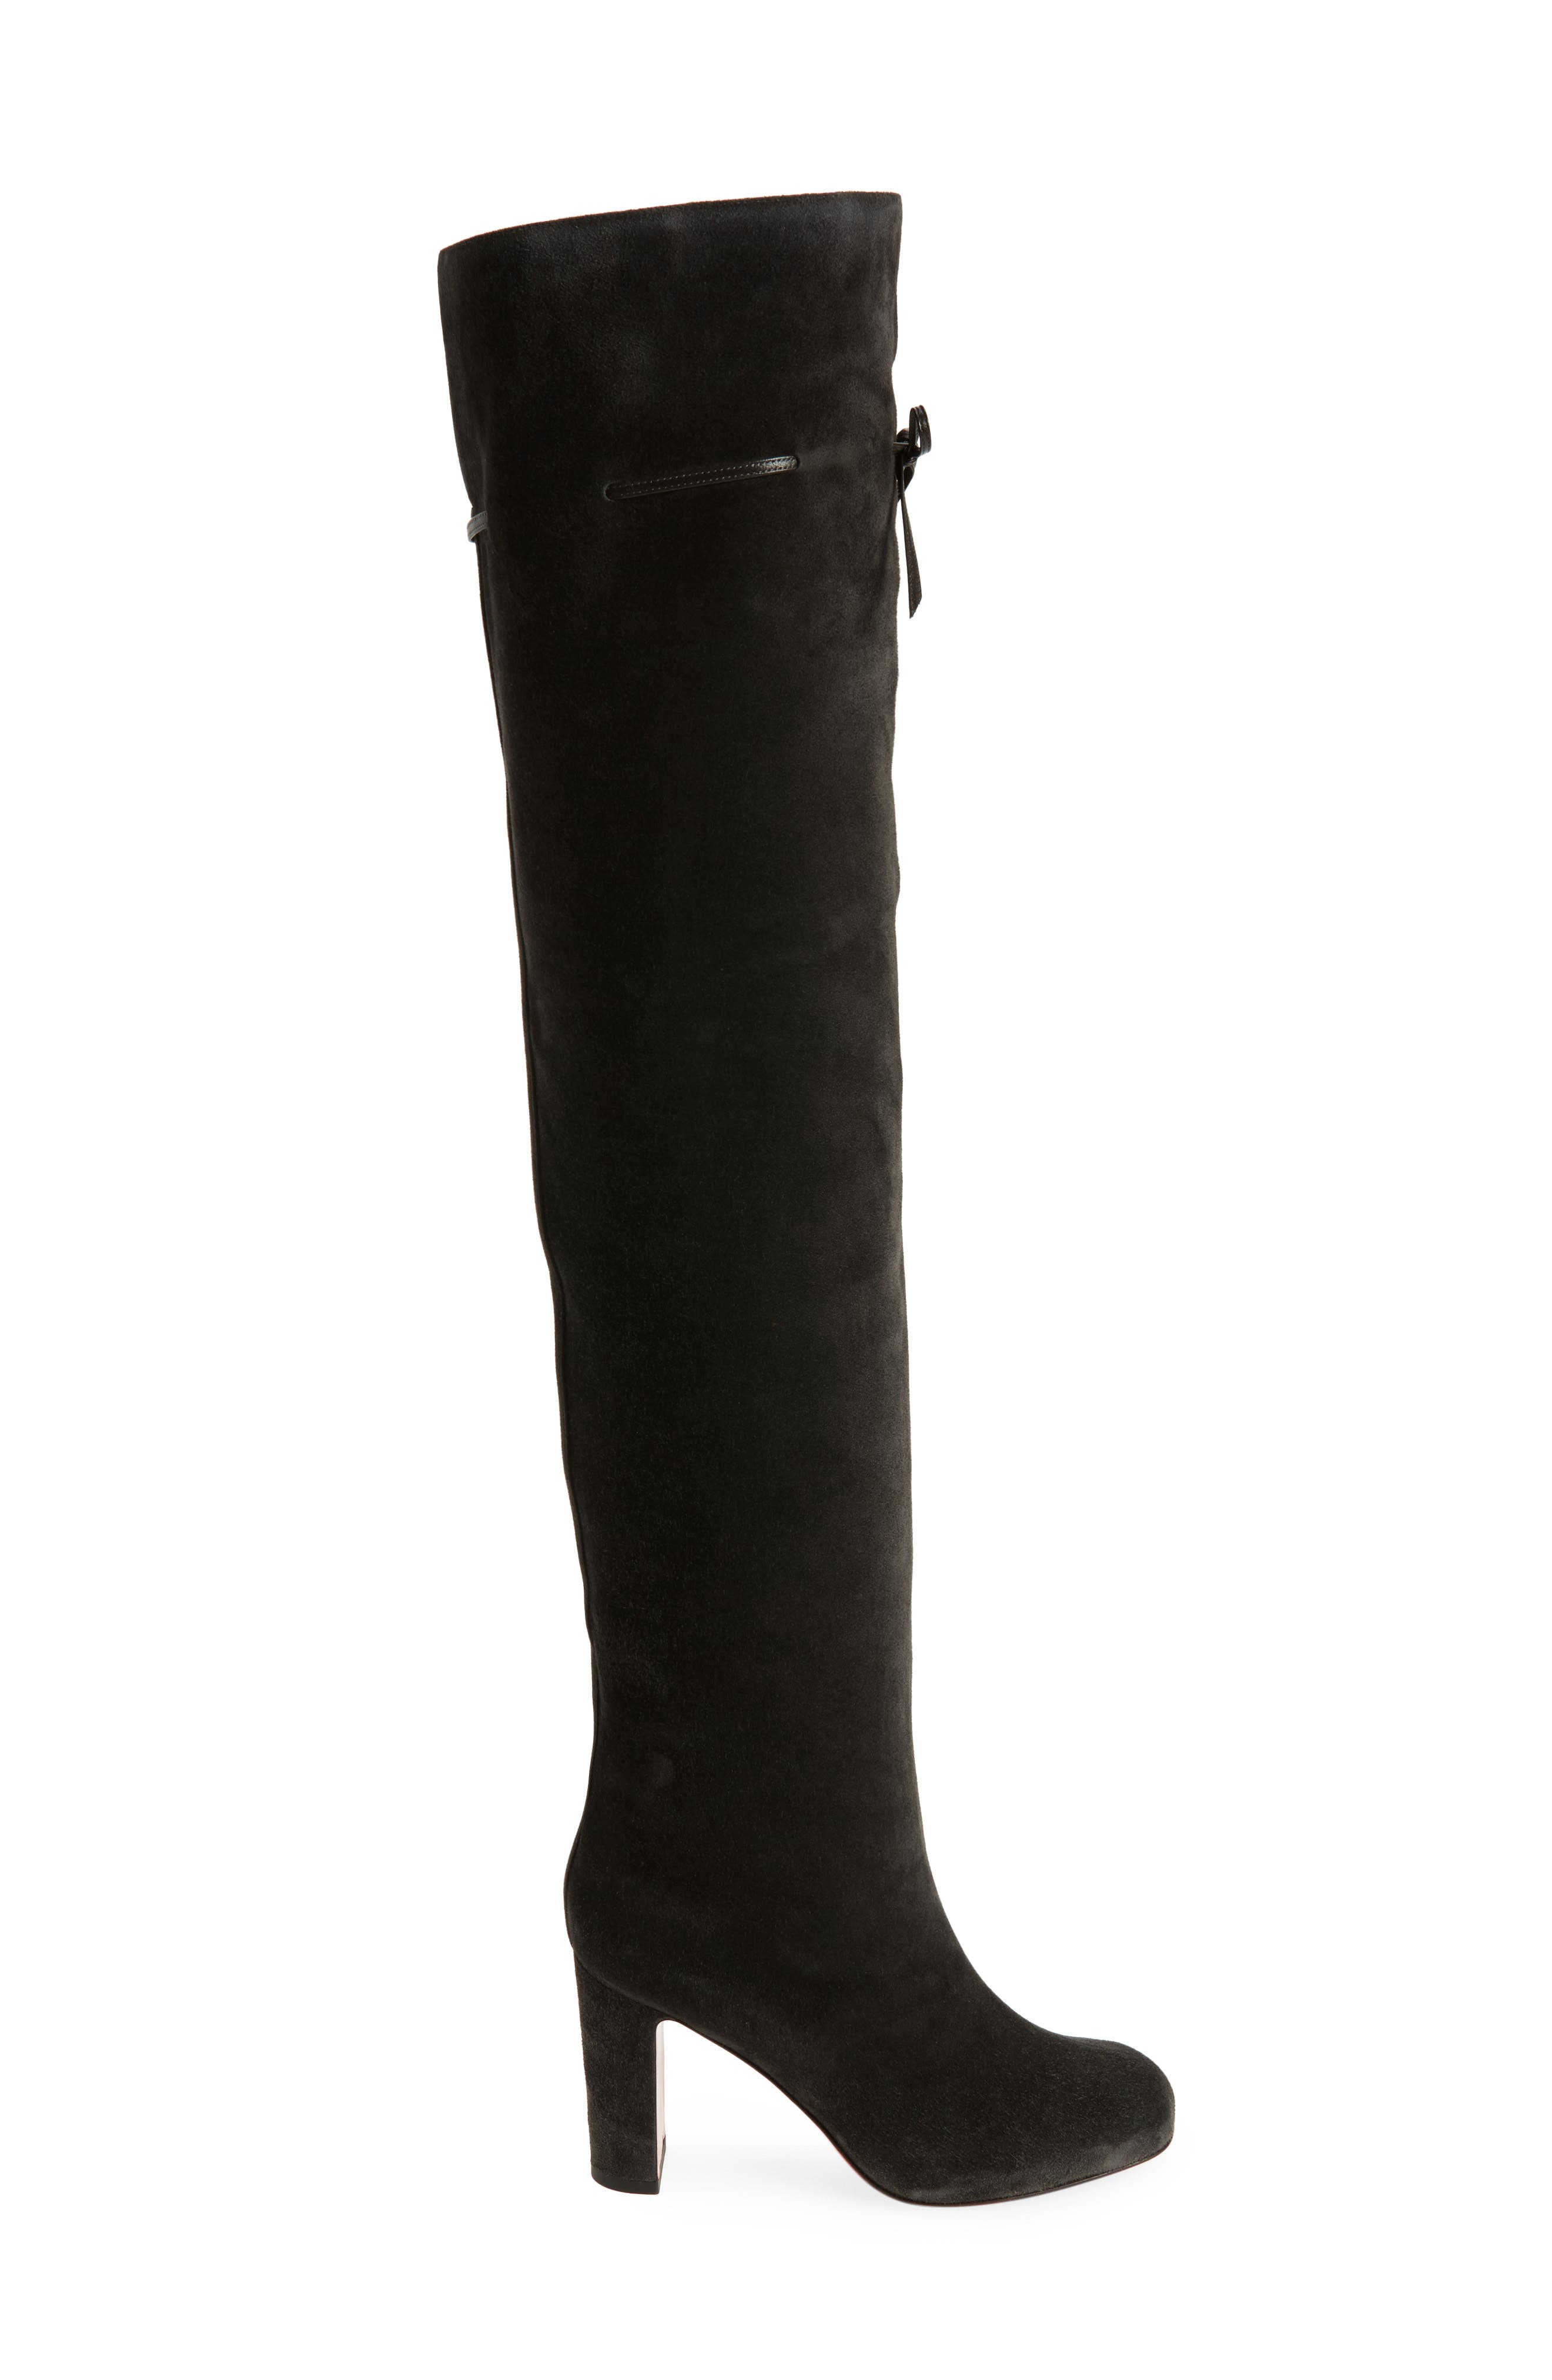 Alta Gant Over the Knee Boot,                             Alternate thumbnail 3, color,                             Grey Suede